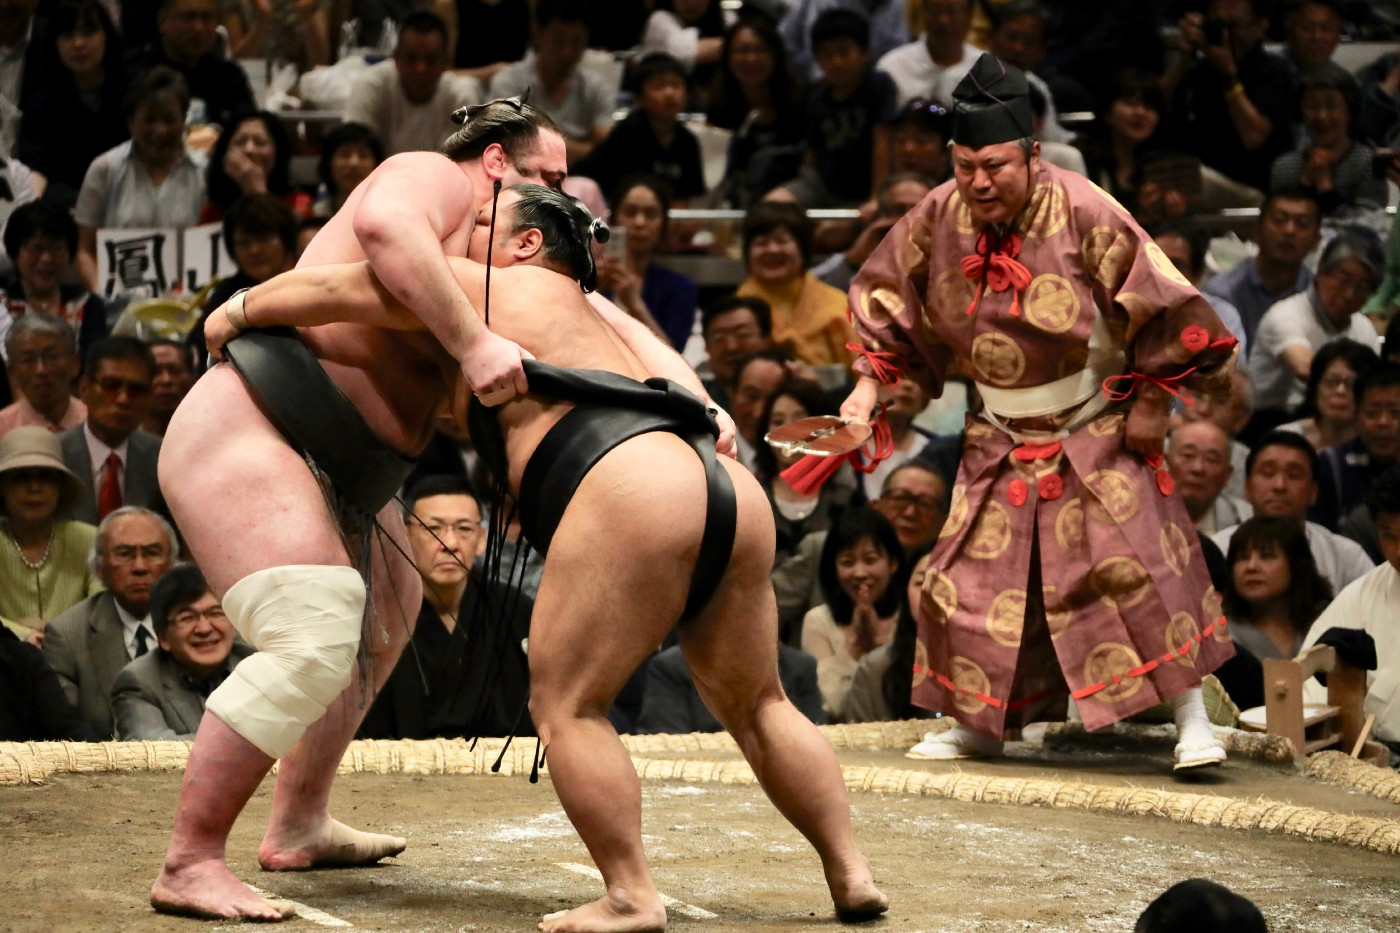 Image of two sumo wrestlers grappling